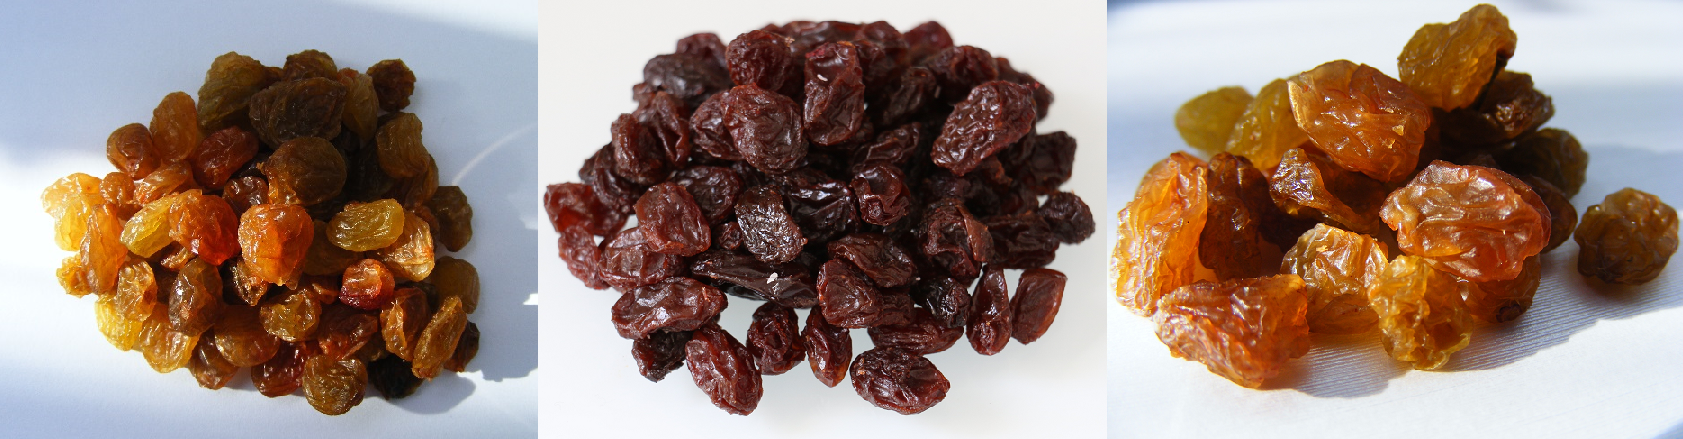 Raisins - three different servings of raisins